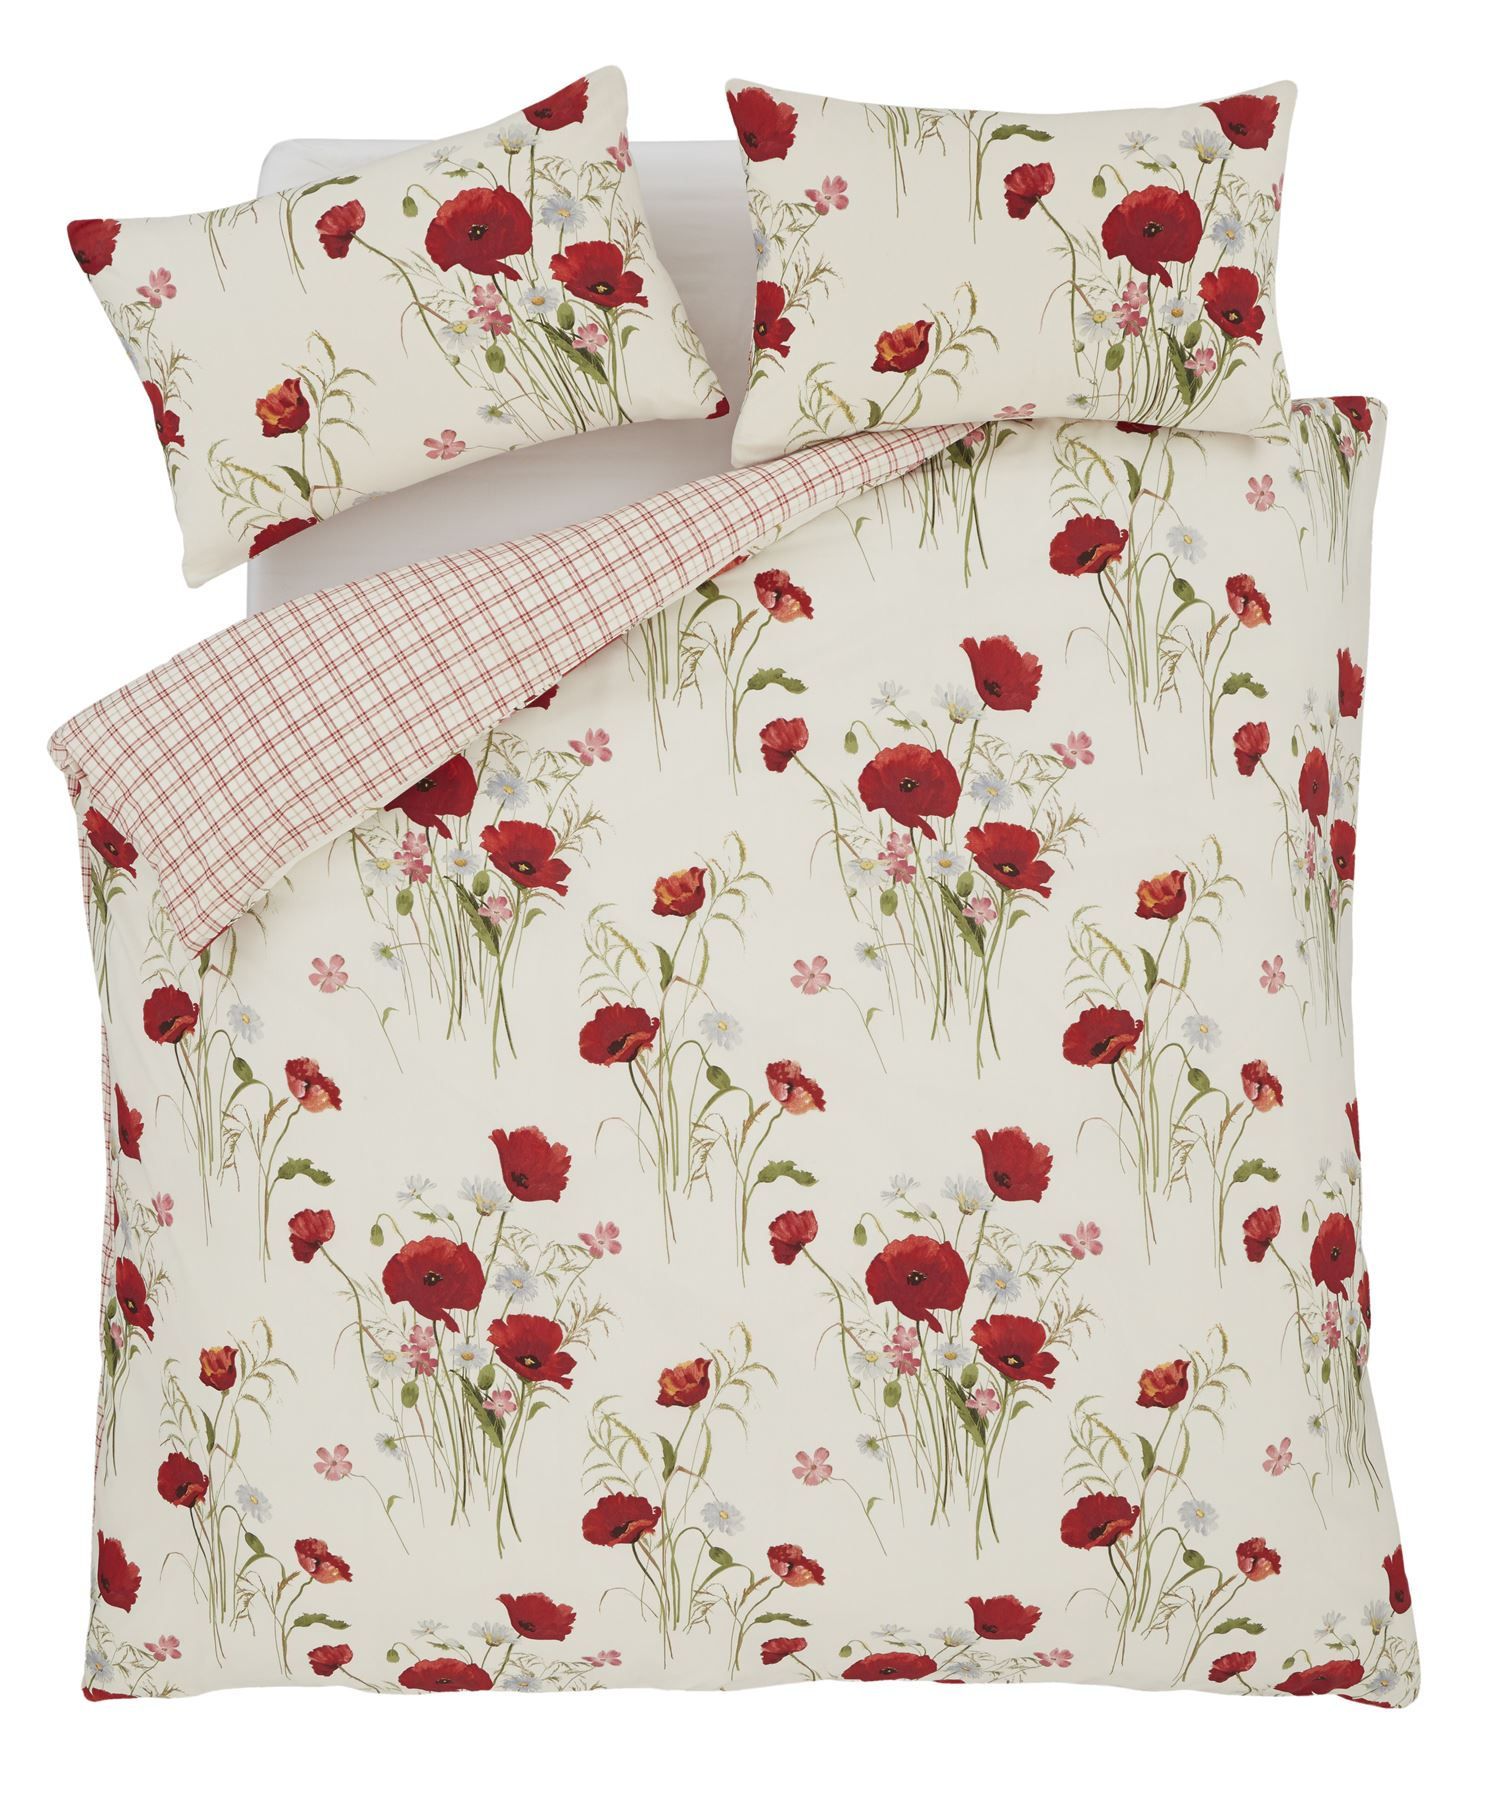 MEADOW POPPY DAISY RED KING SIZE DUVET COMFORTER COVER /& ANNEAU TOP CURTAINS